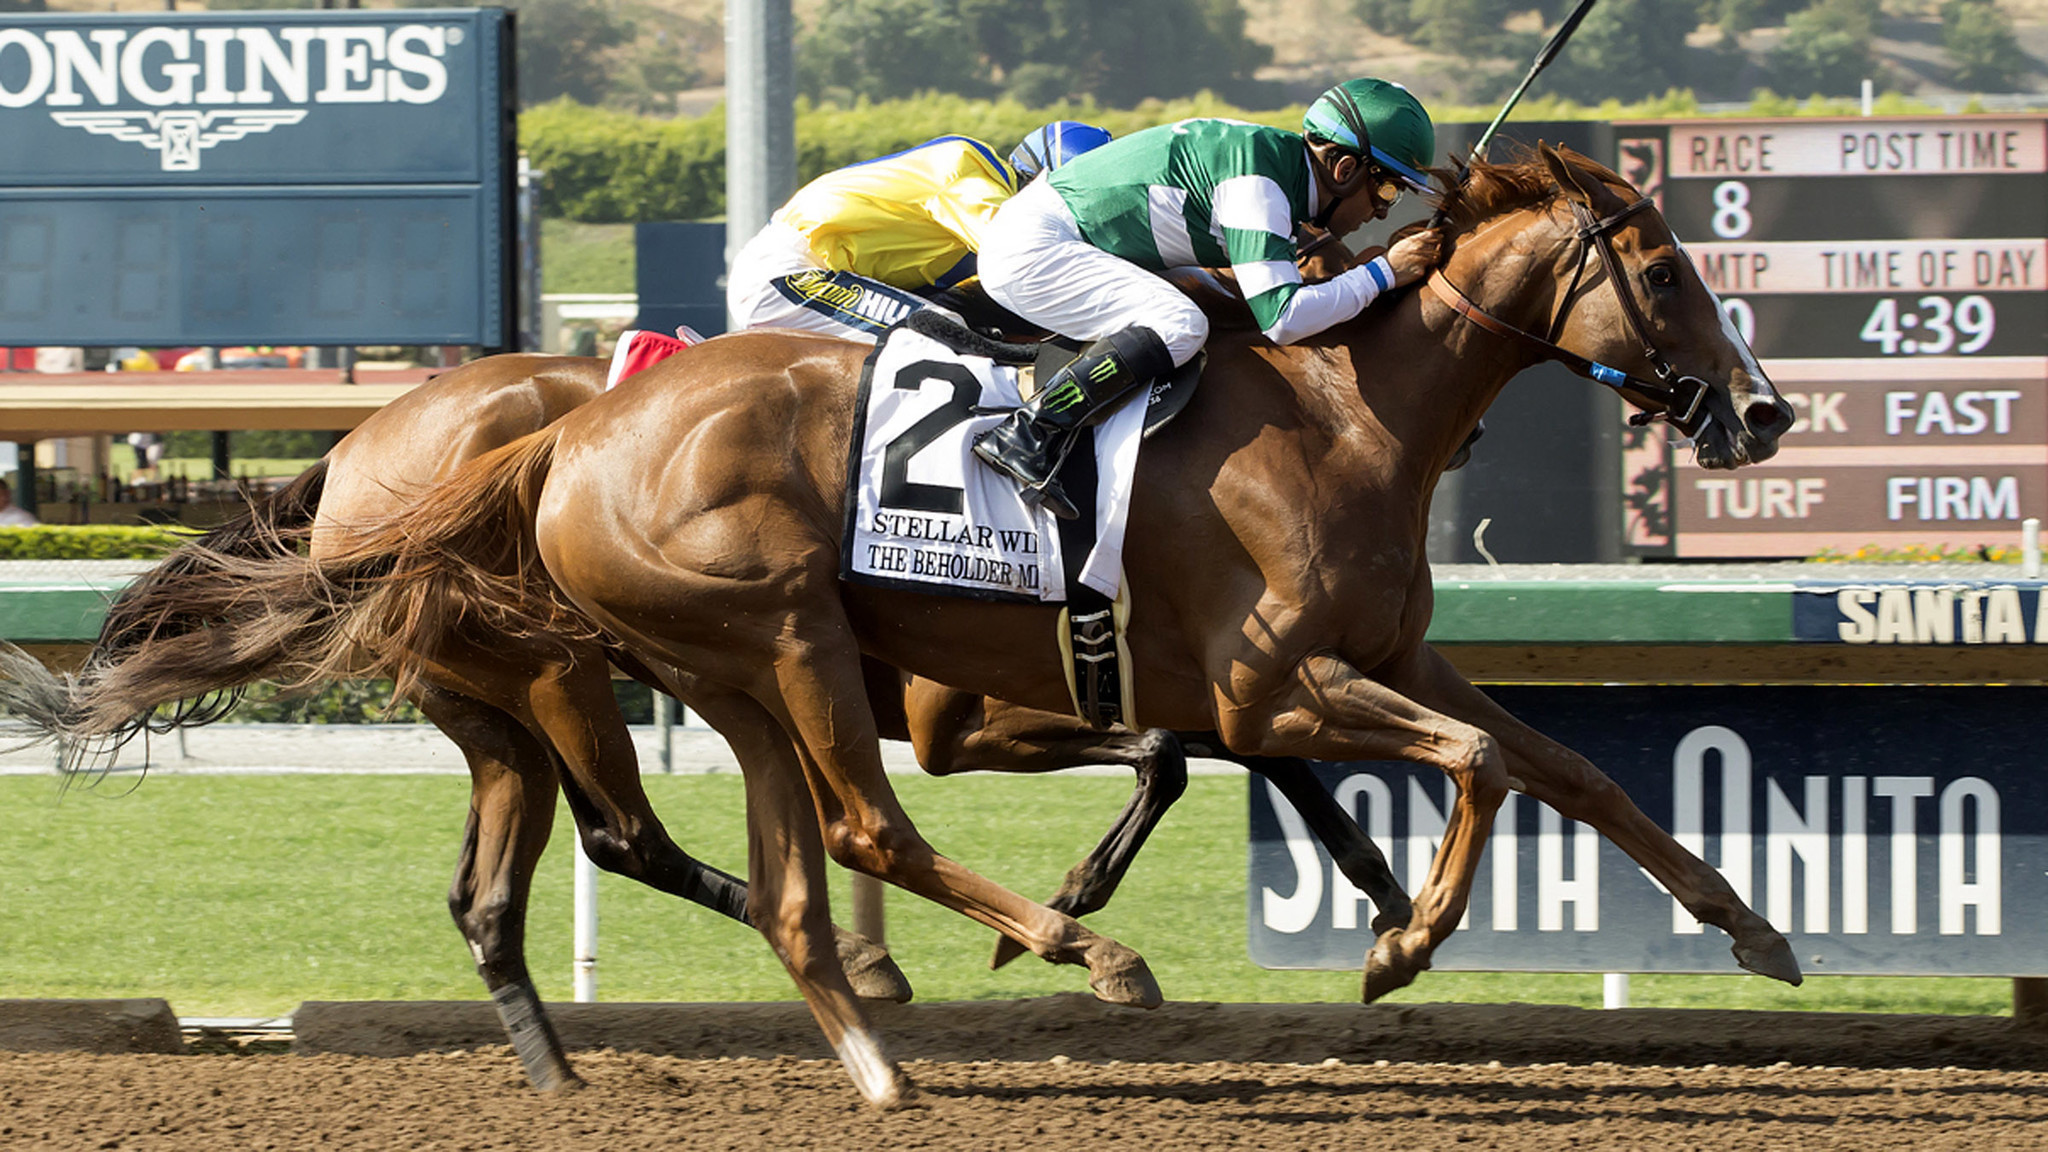 Stellar Wind Wins Thrilling Duel In Beholder Mile La Times